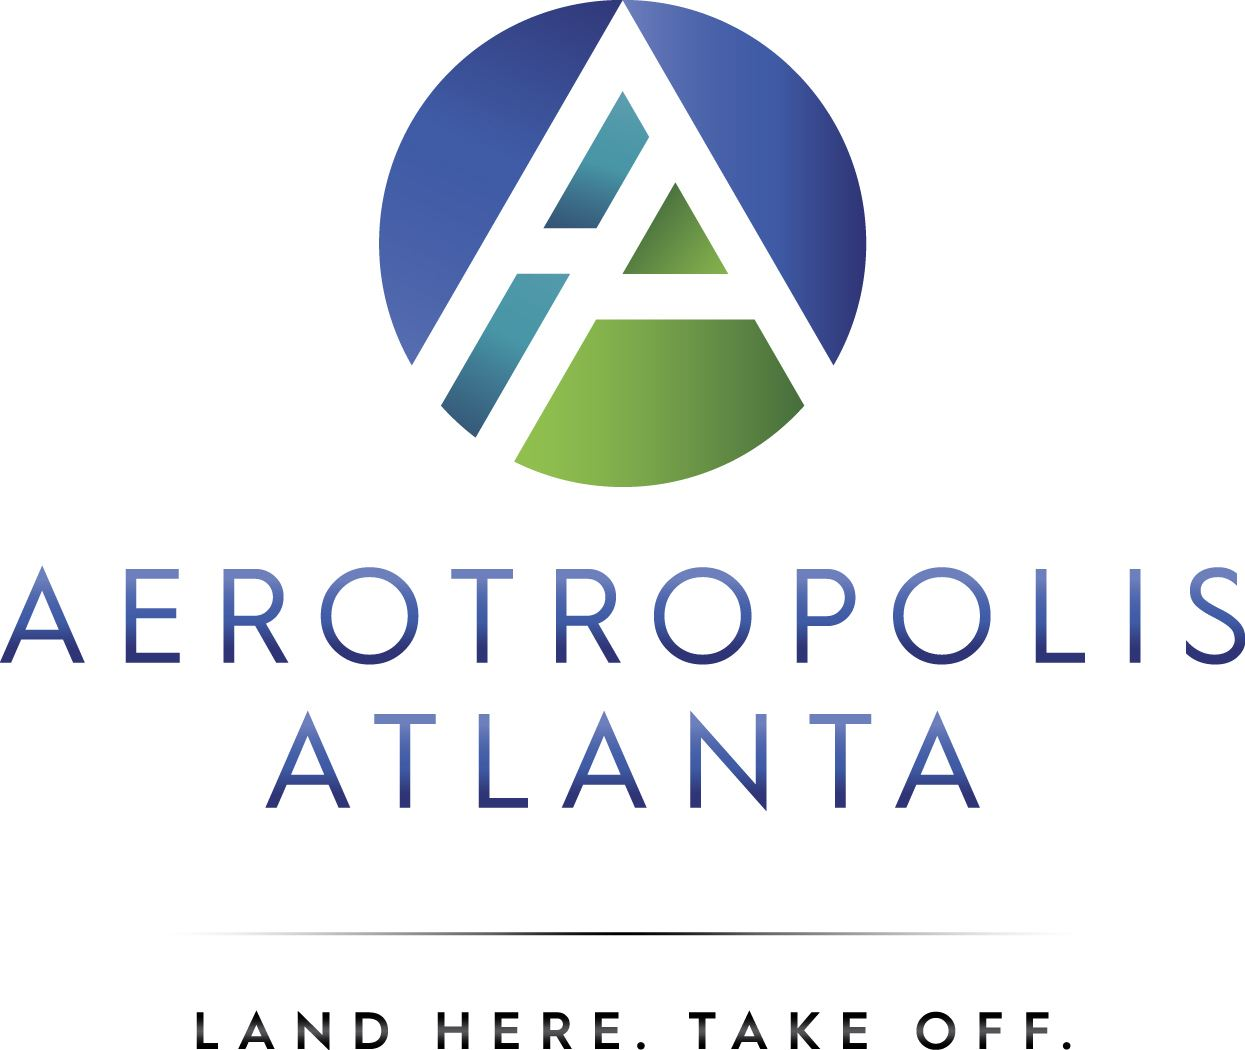 Aerotropolis ATL GA Opens in new window